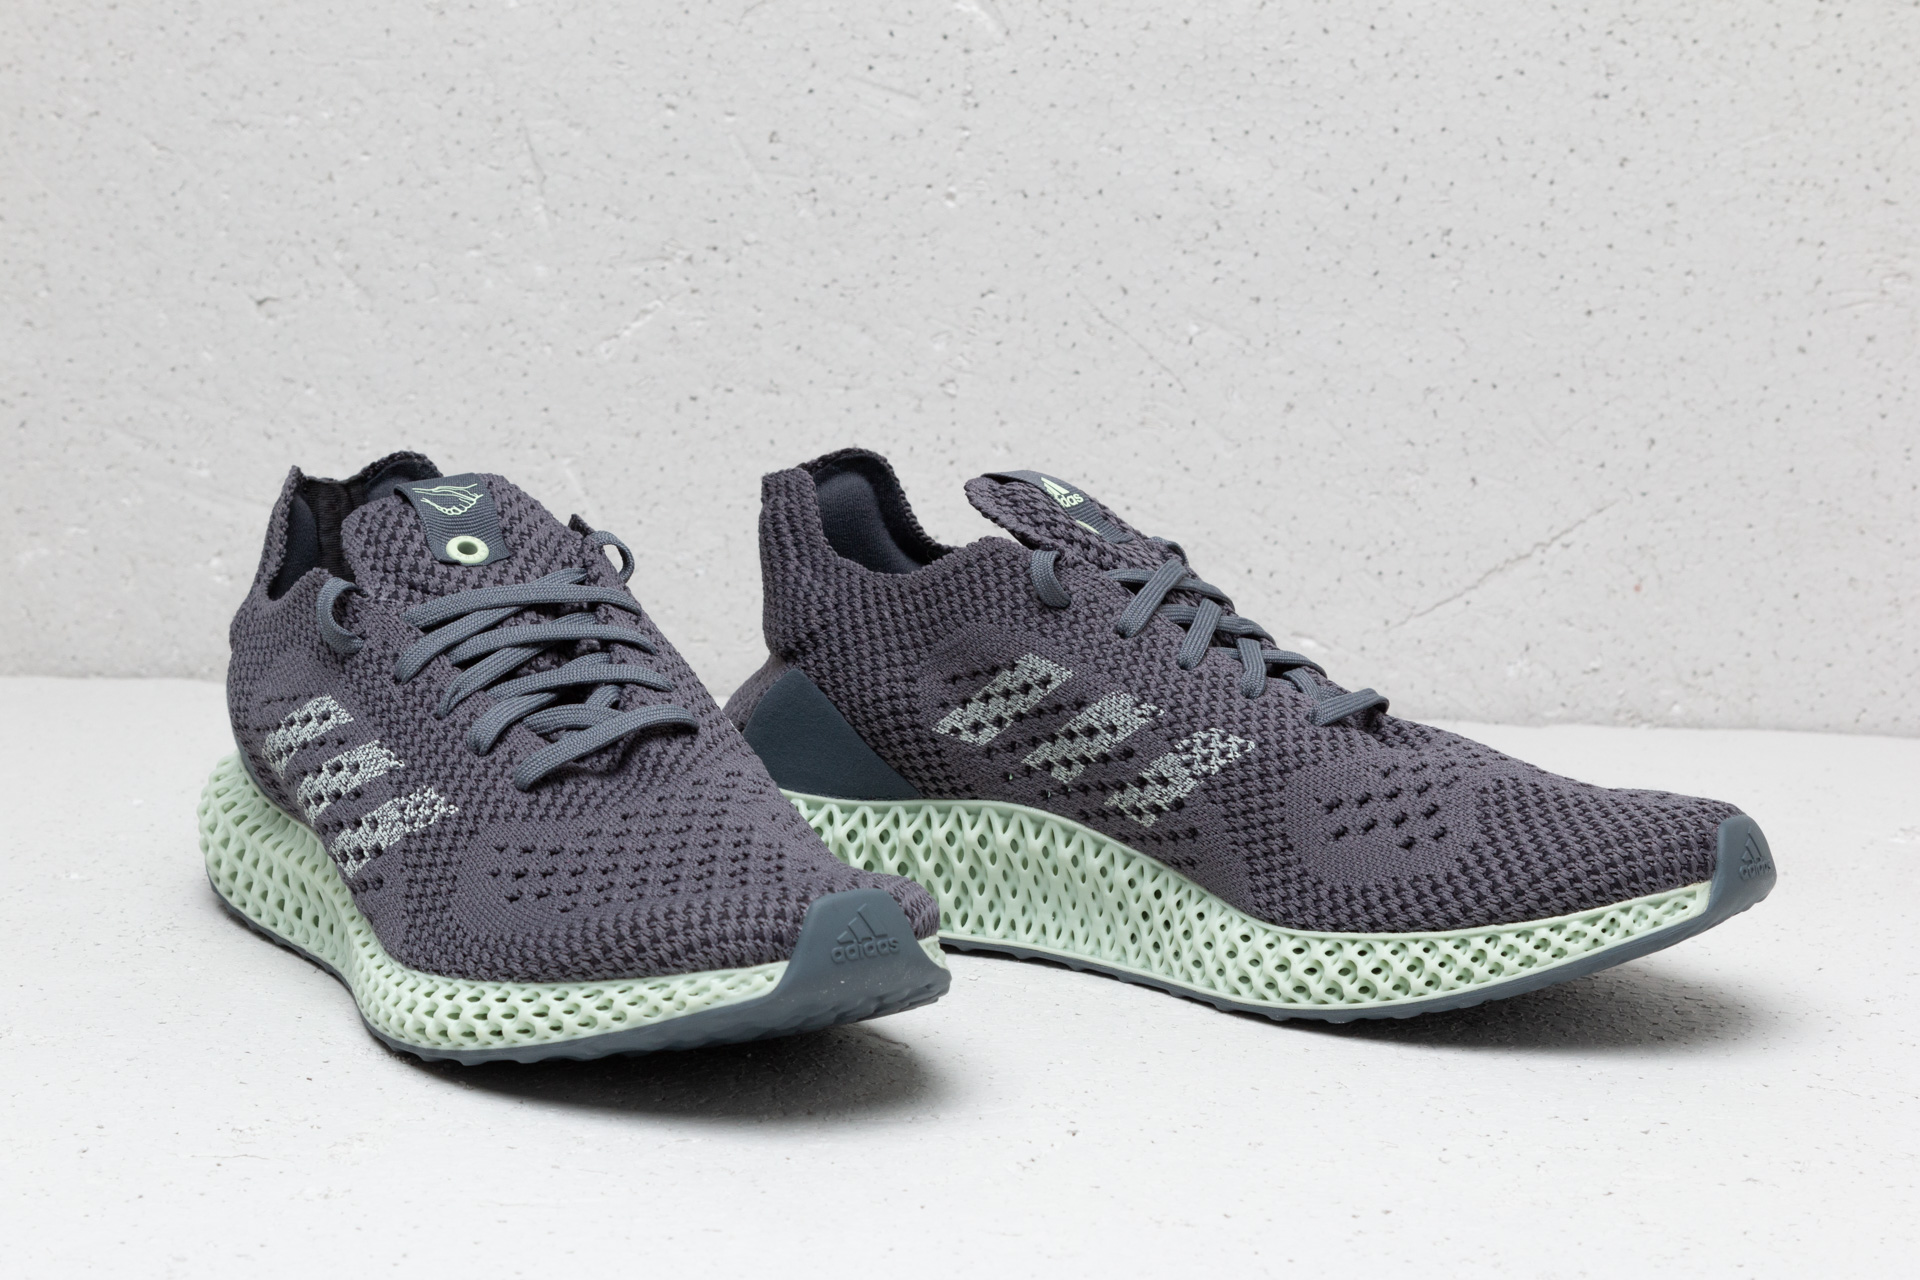 adidas futurecraft 4d consortium onyx grey release date aero green D96972 sole and shape